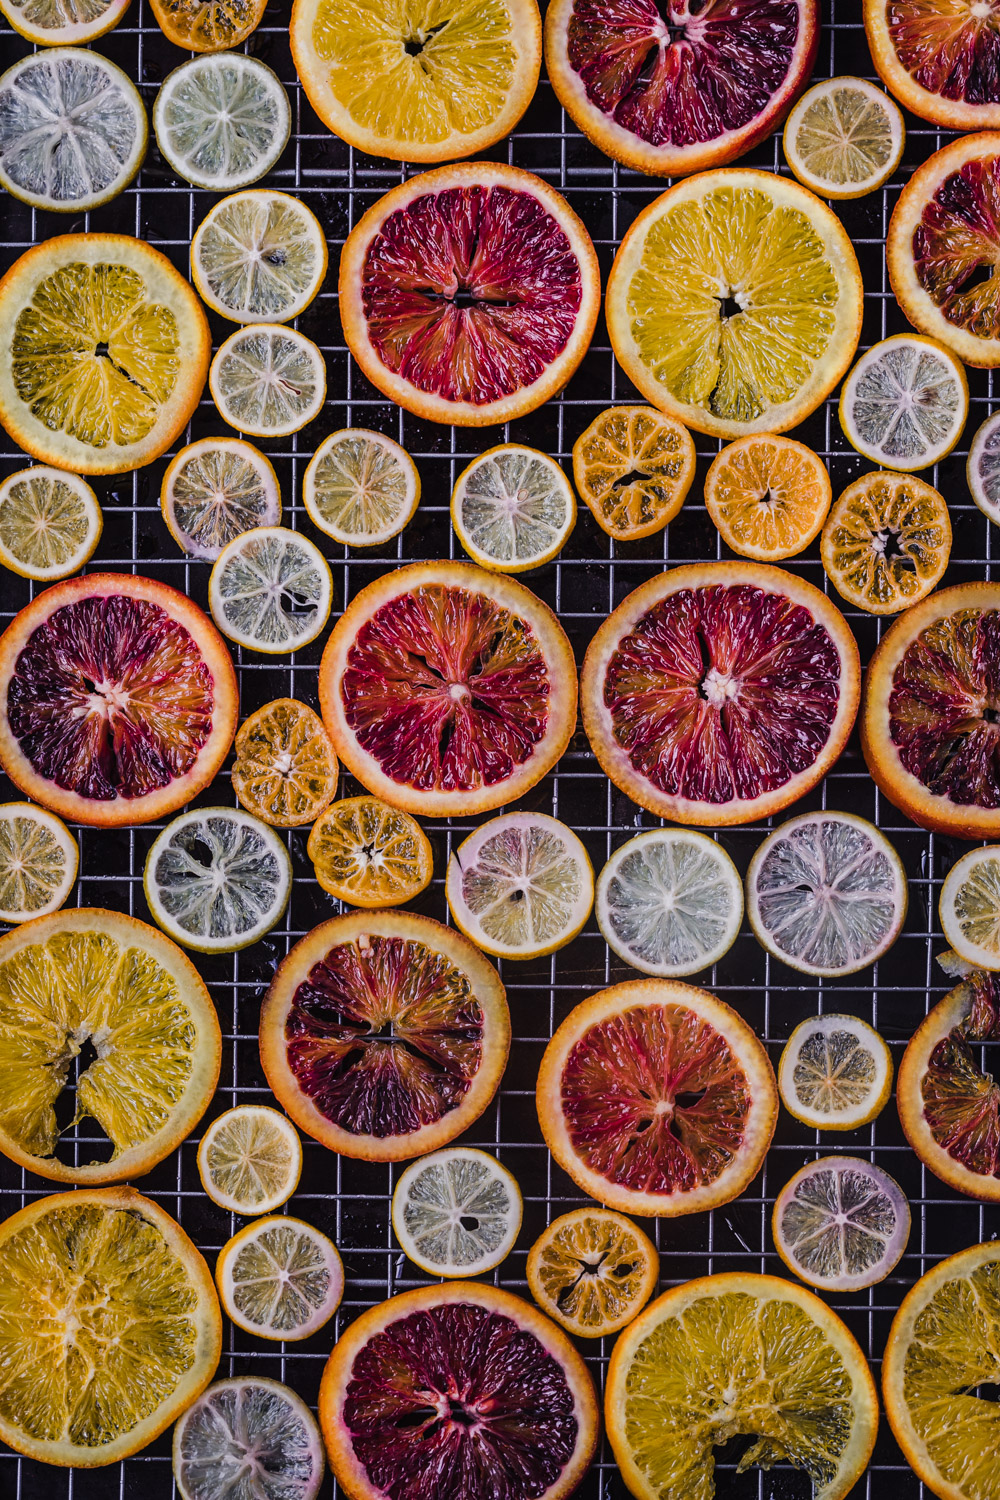 Overhead shot of an assortment of citrus types drying on a rack.